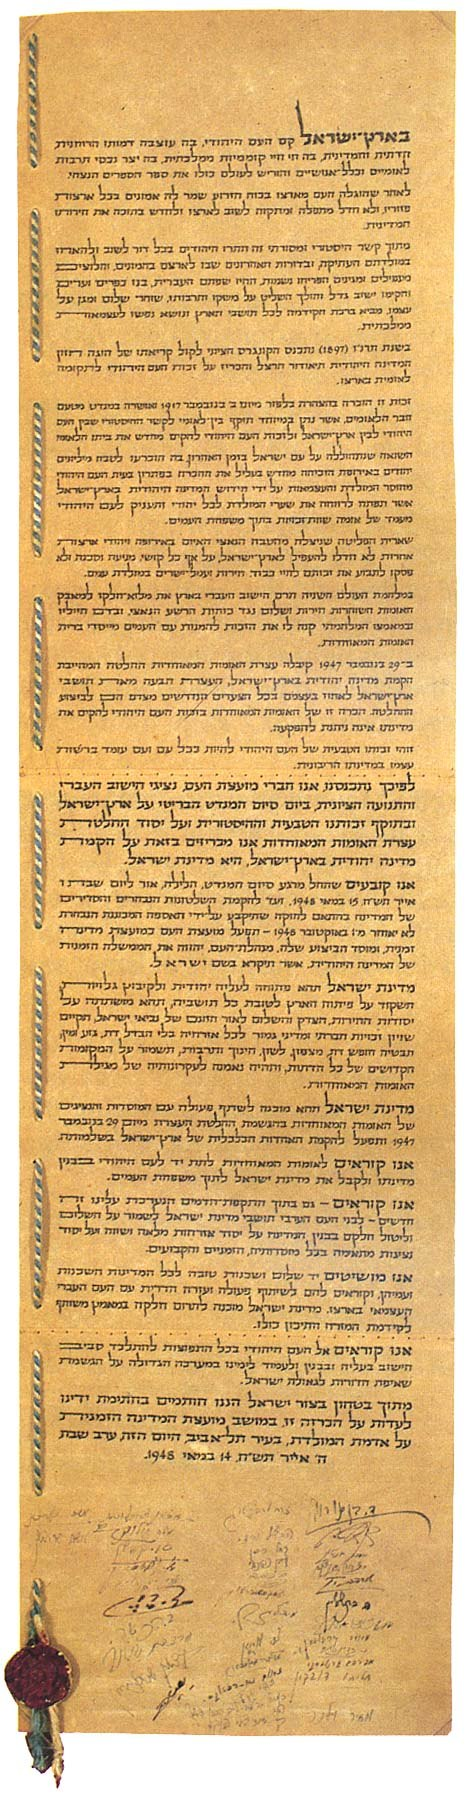 Israel Declaration of Independence